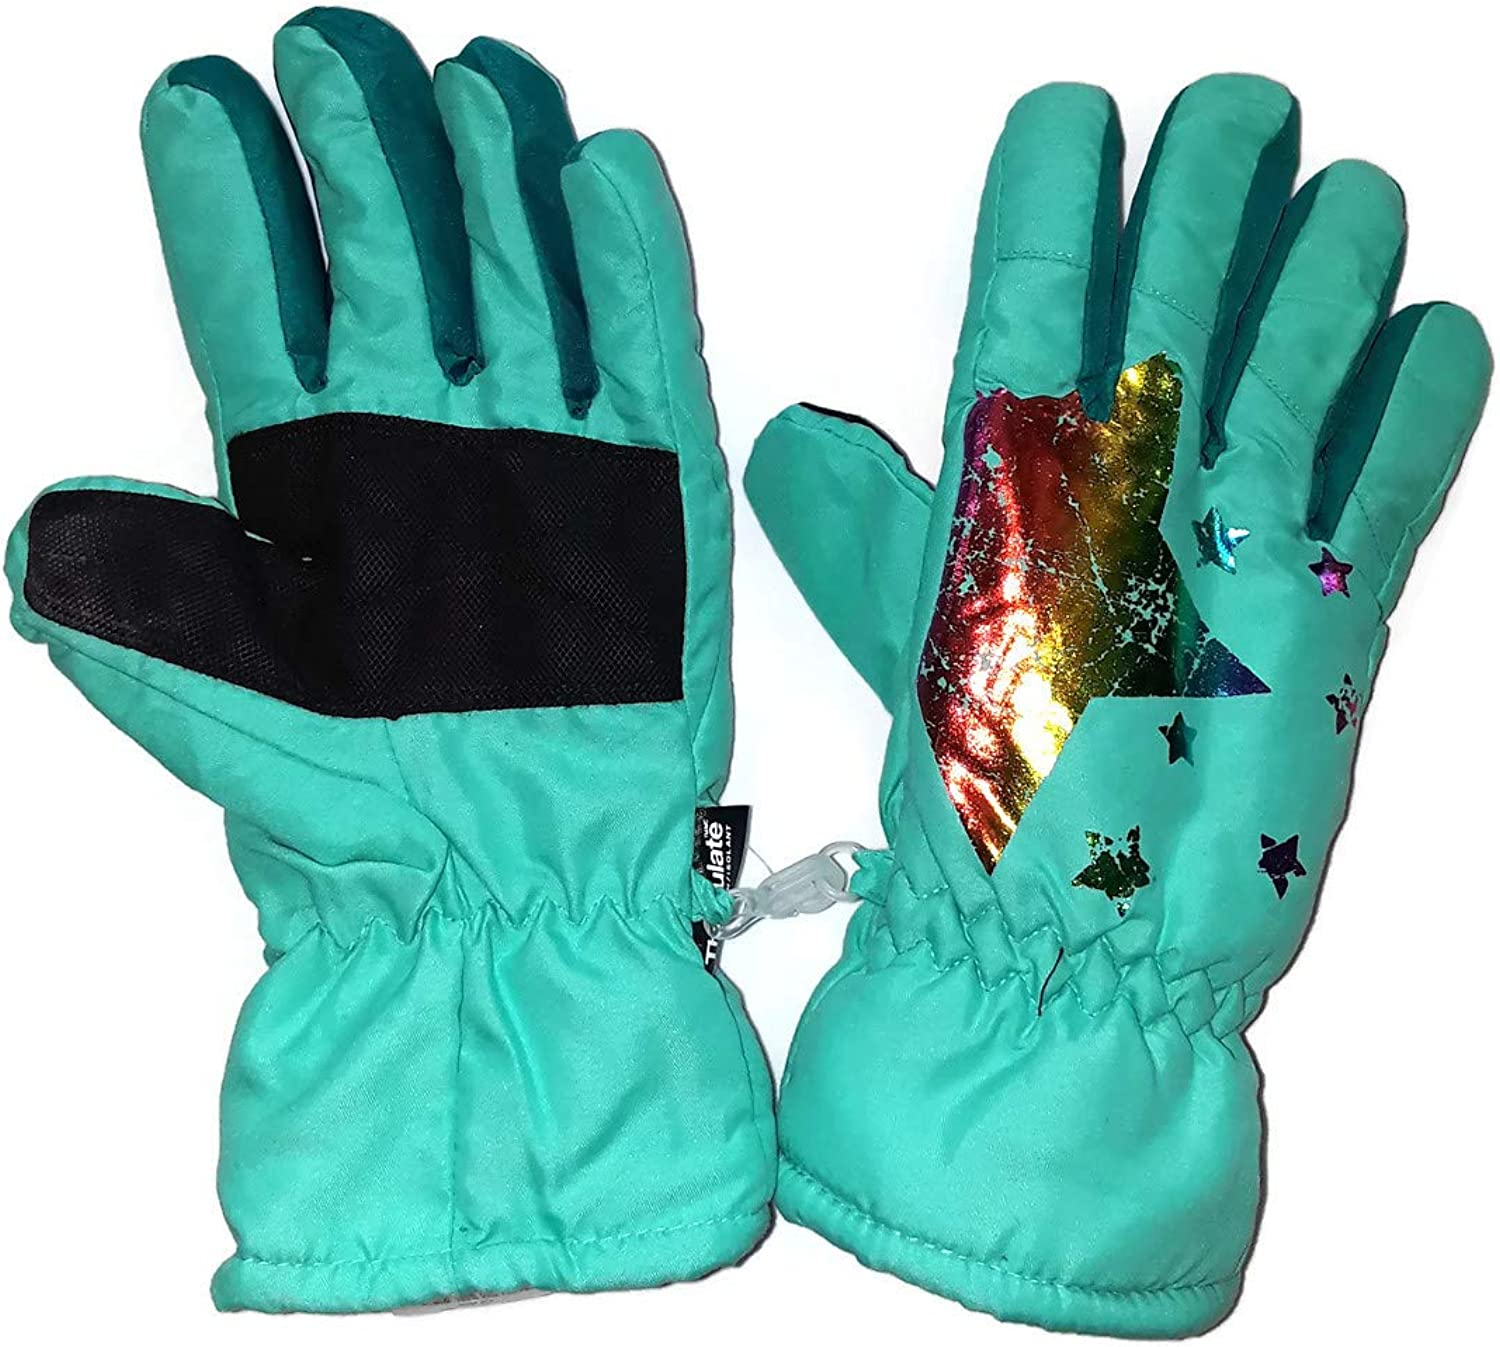 Girls Rainbow Print Rare Free shipping anywhere in the nation Star Ski L size Gloves M